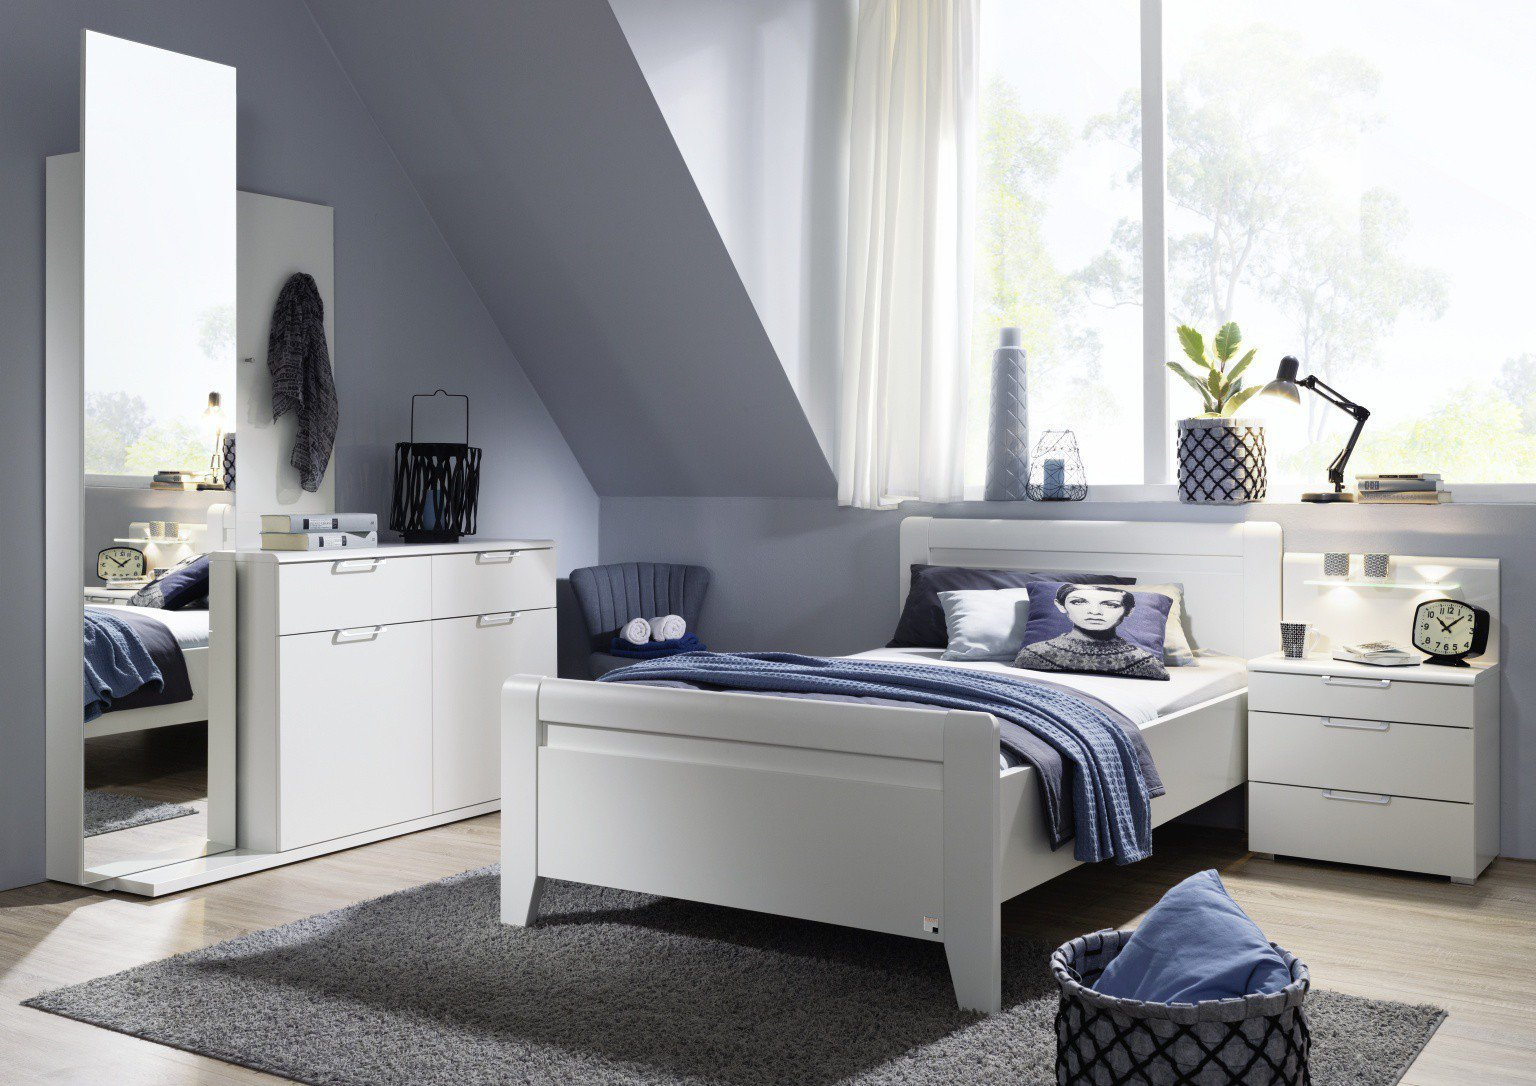 rauch victoria einzelbett seniorengeeignet m bel letz ihr online shop. Black Bedroom Furniture Sets. Home Design Ideas